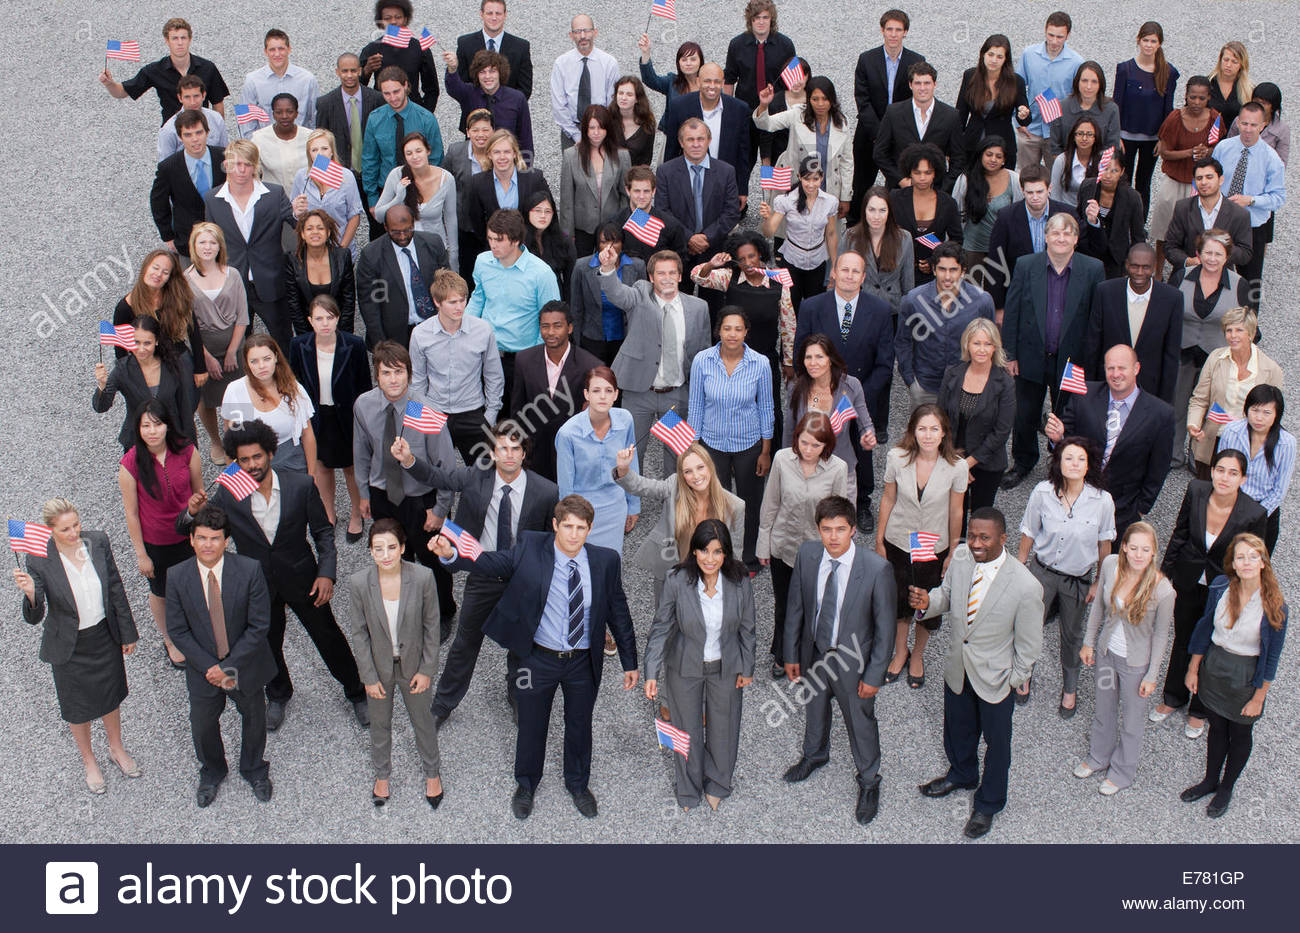 Portrait of cheering crowd of business people - Stock Image